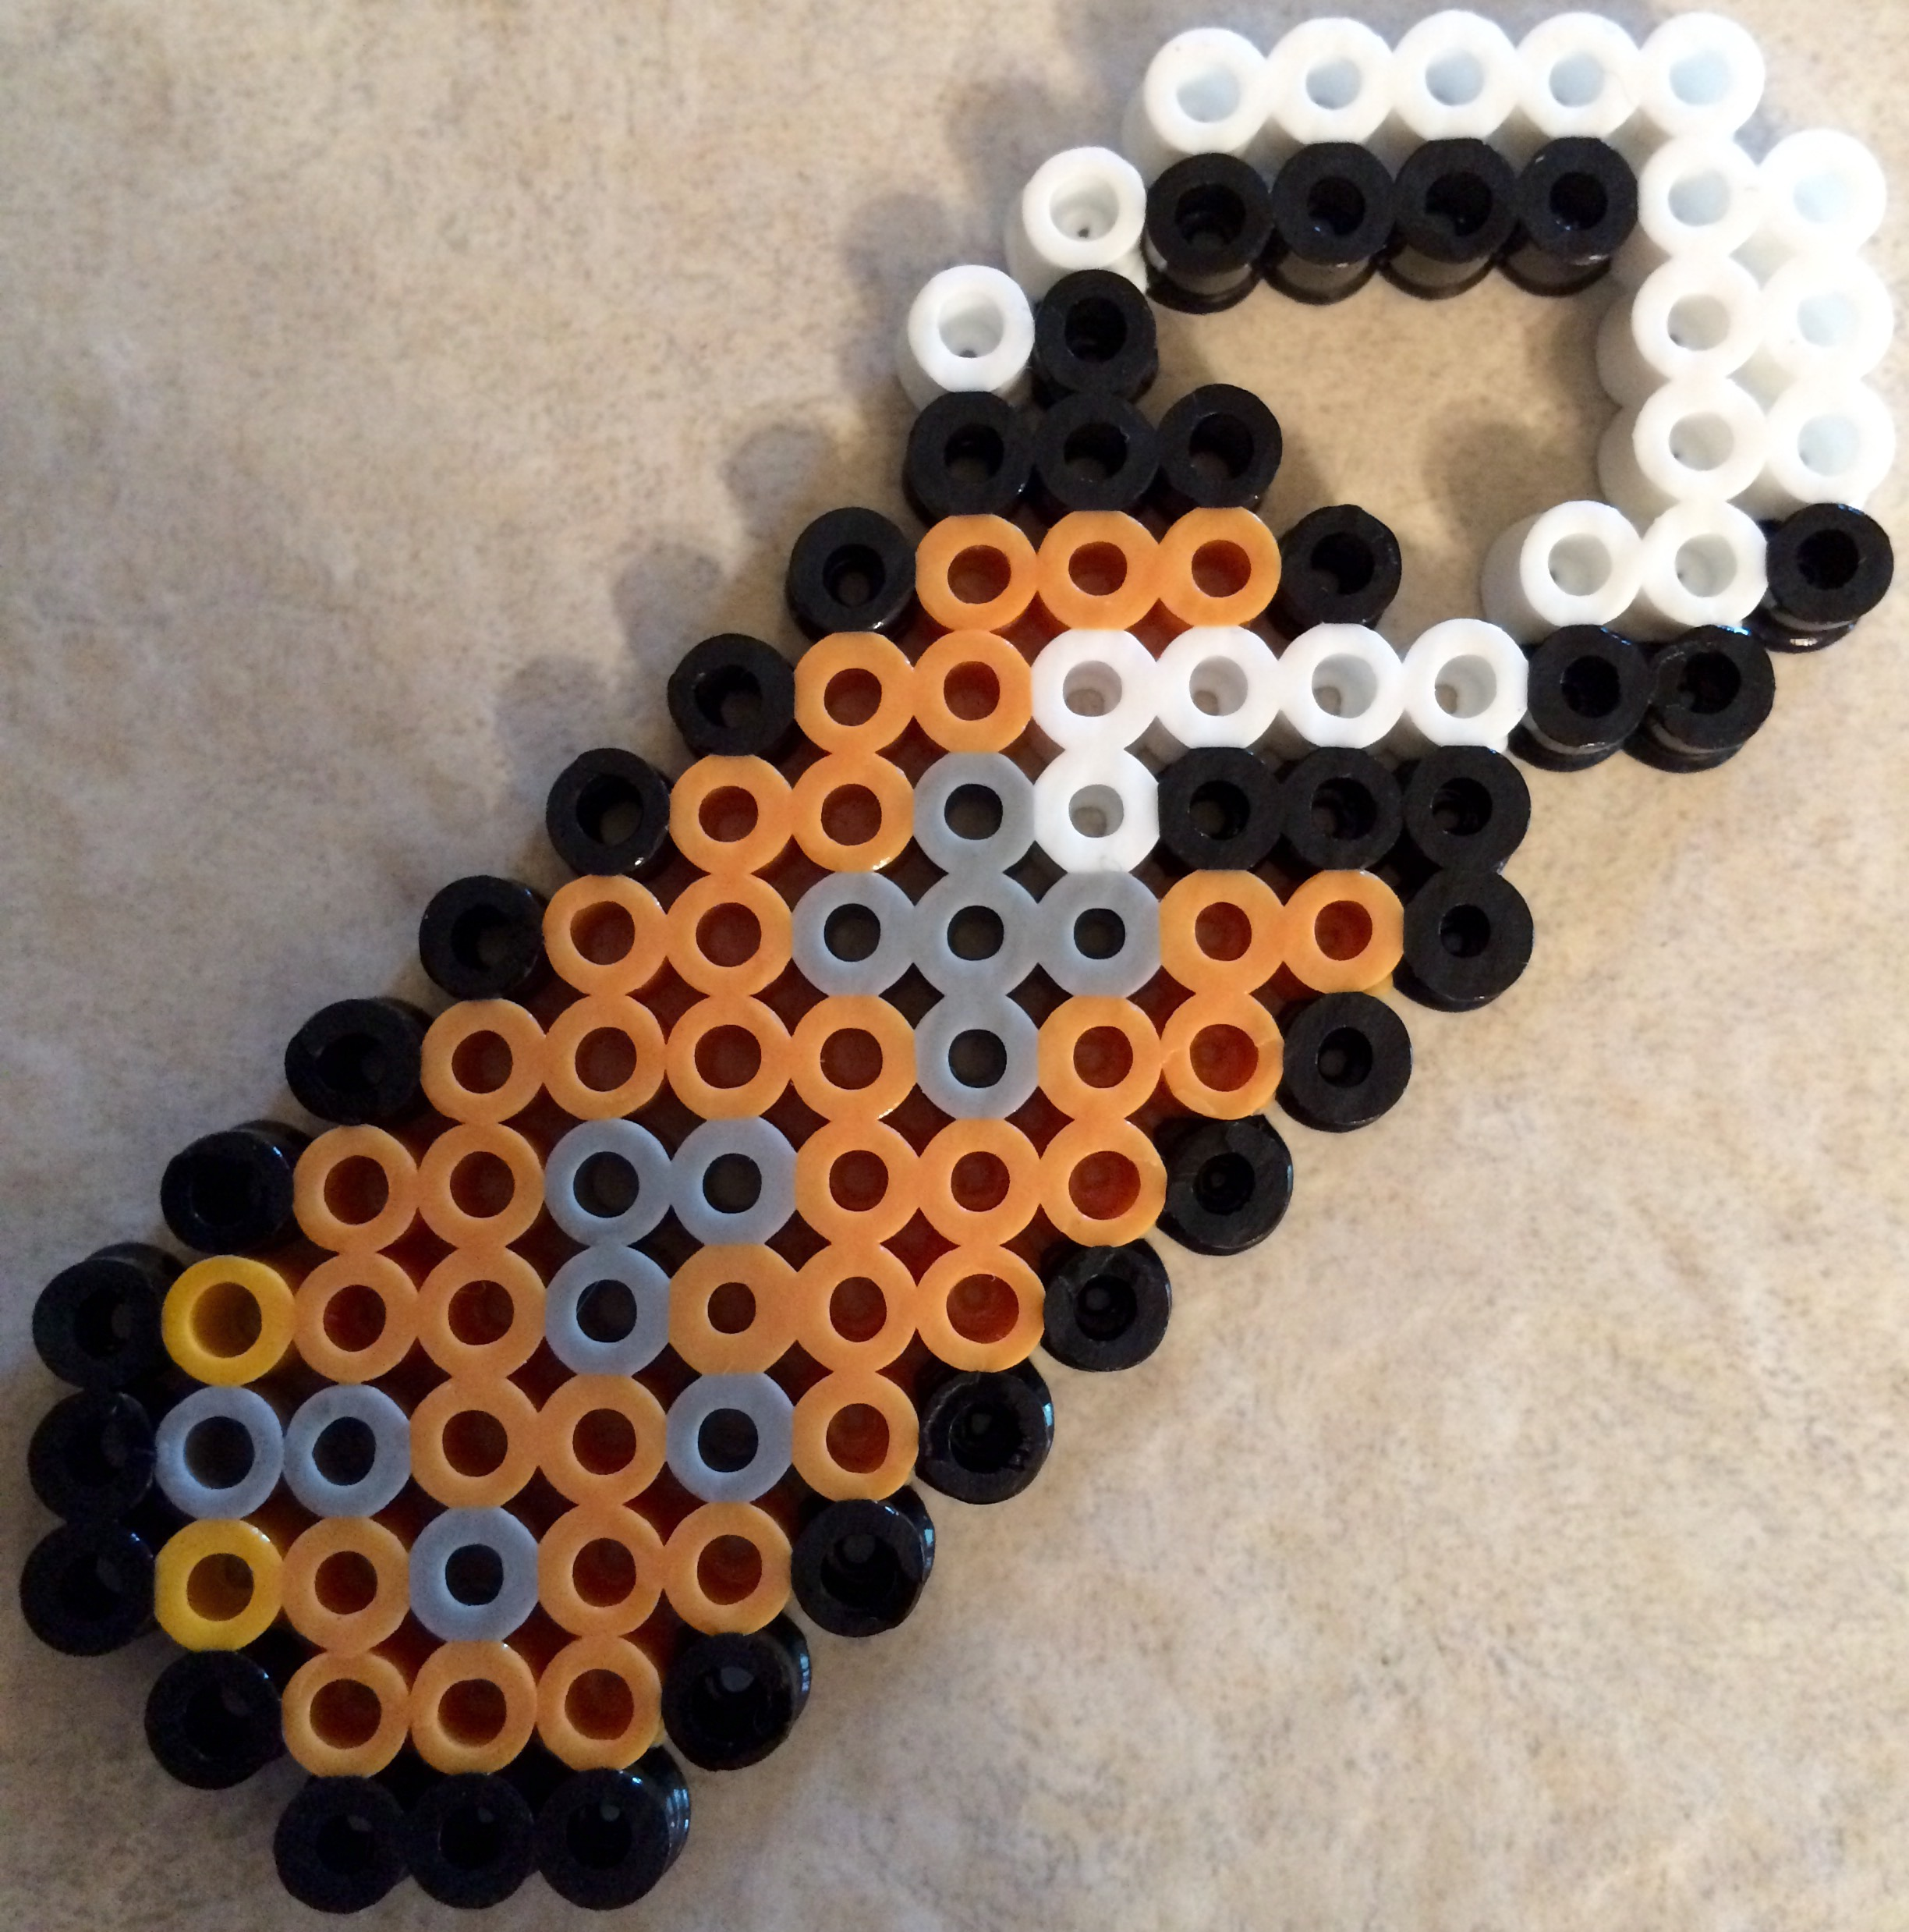 Name tag craft ideas -  Perler Minecraft Name Tag By Lizc864 By Lizc864